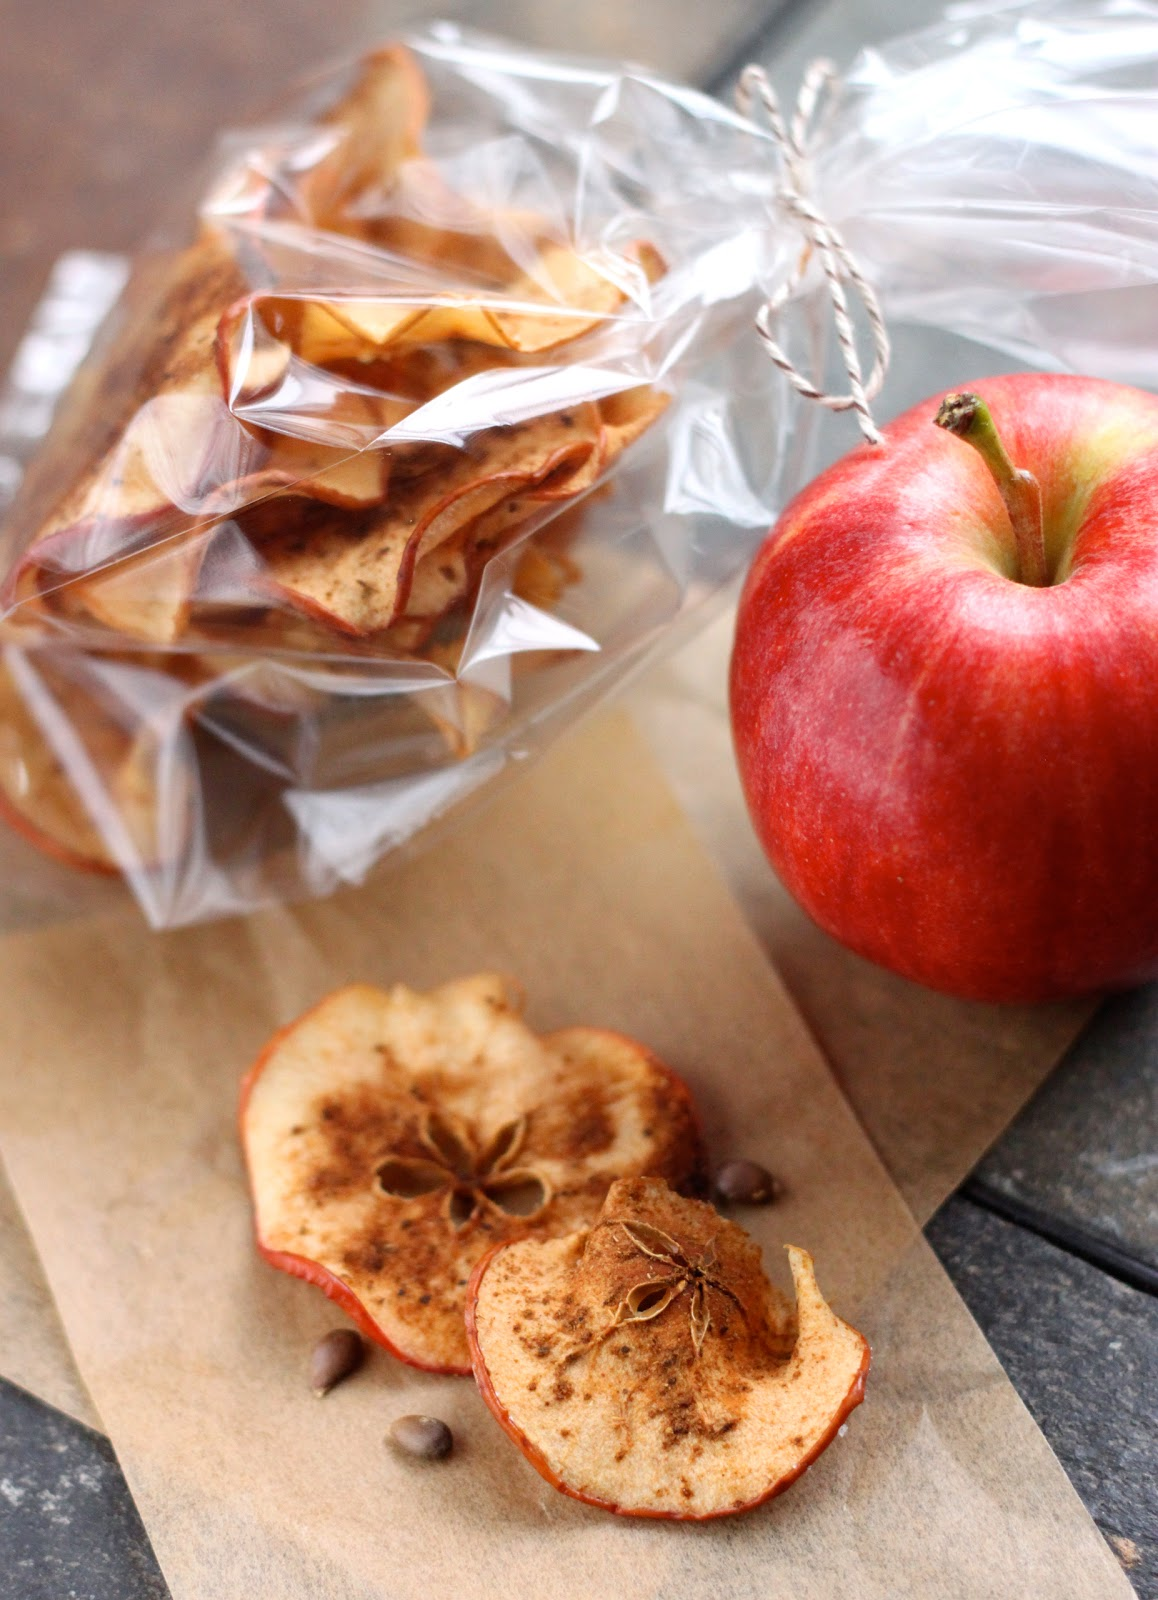 ... eats: Guest Post: Sugar and Spice Apple Chips from The Cilantropist